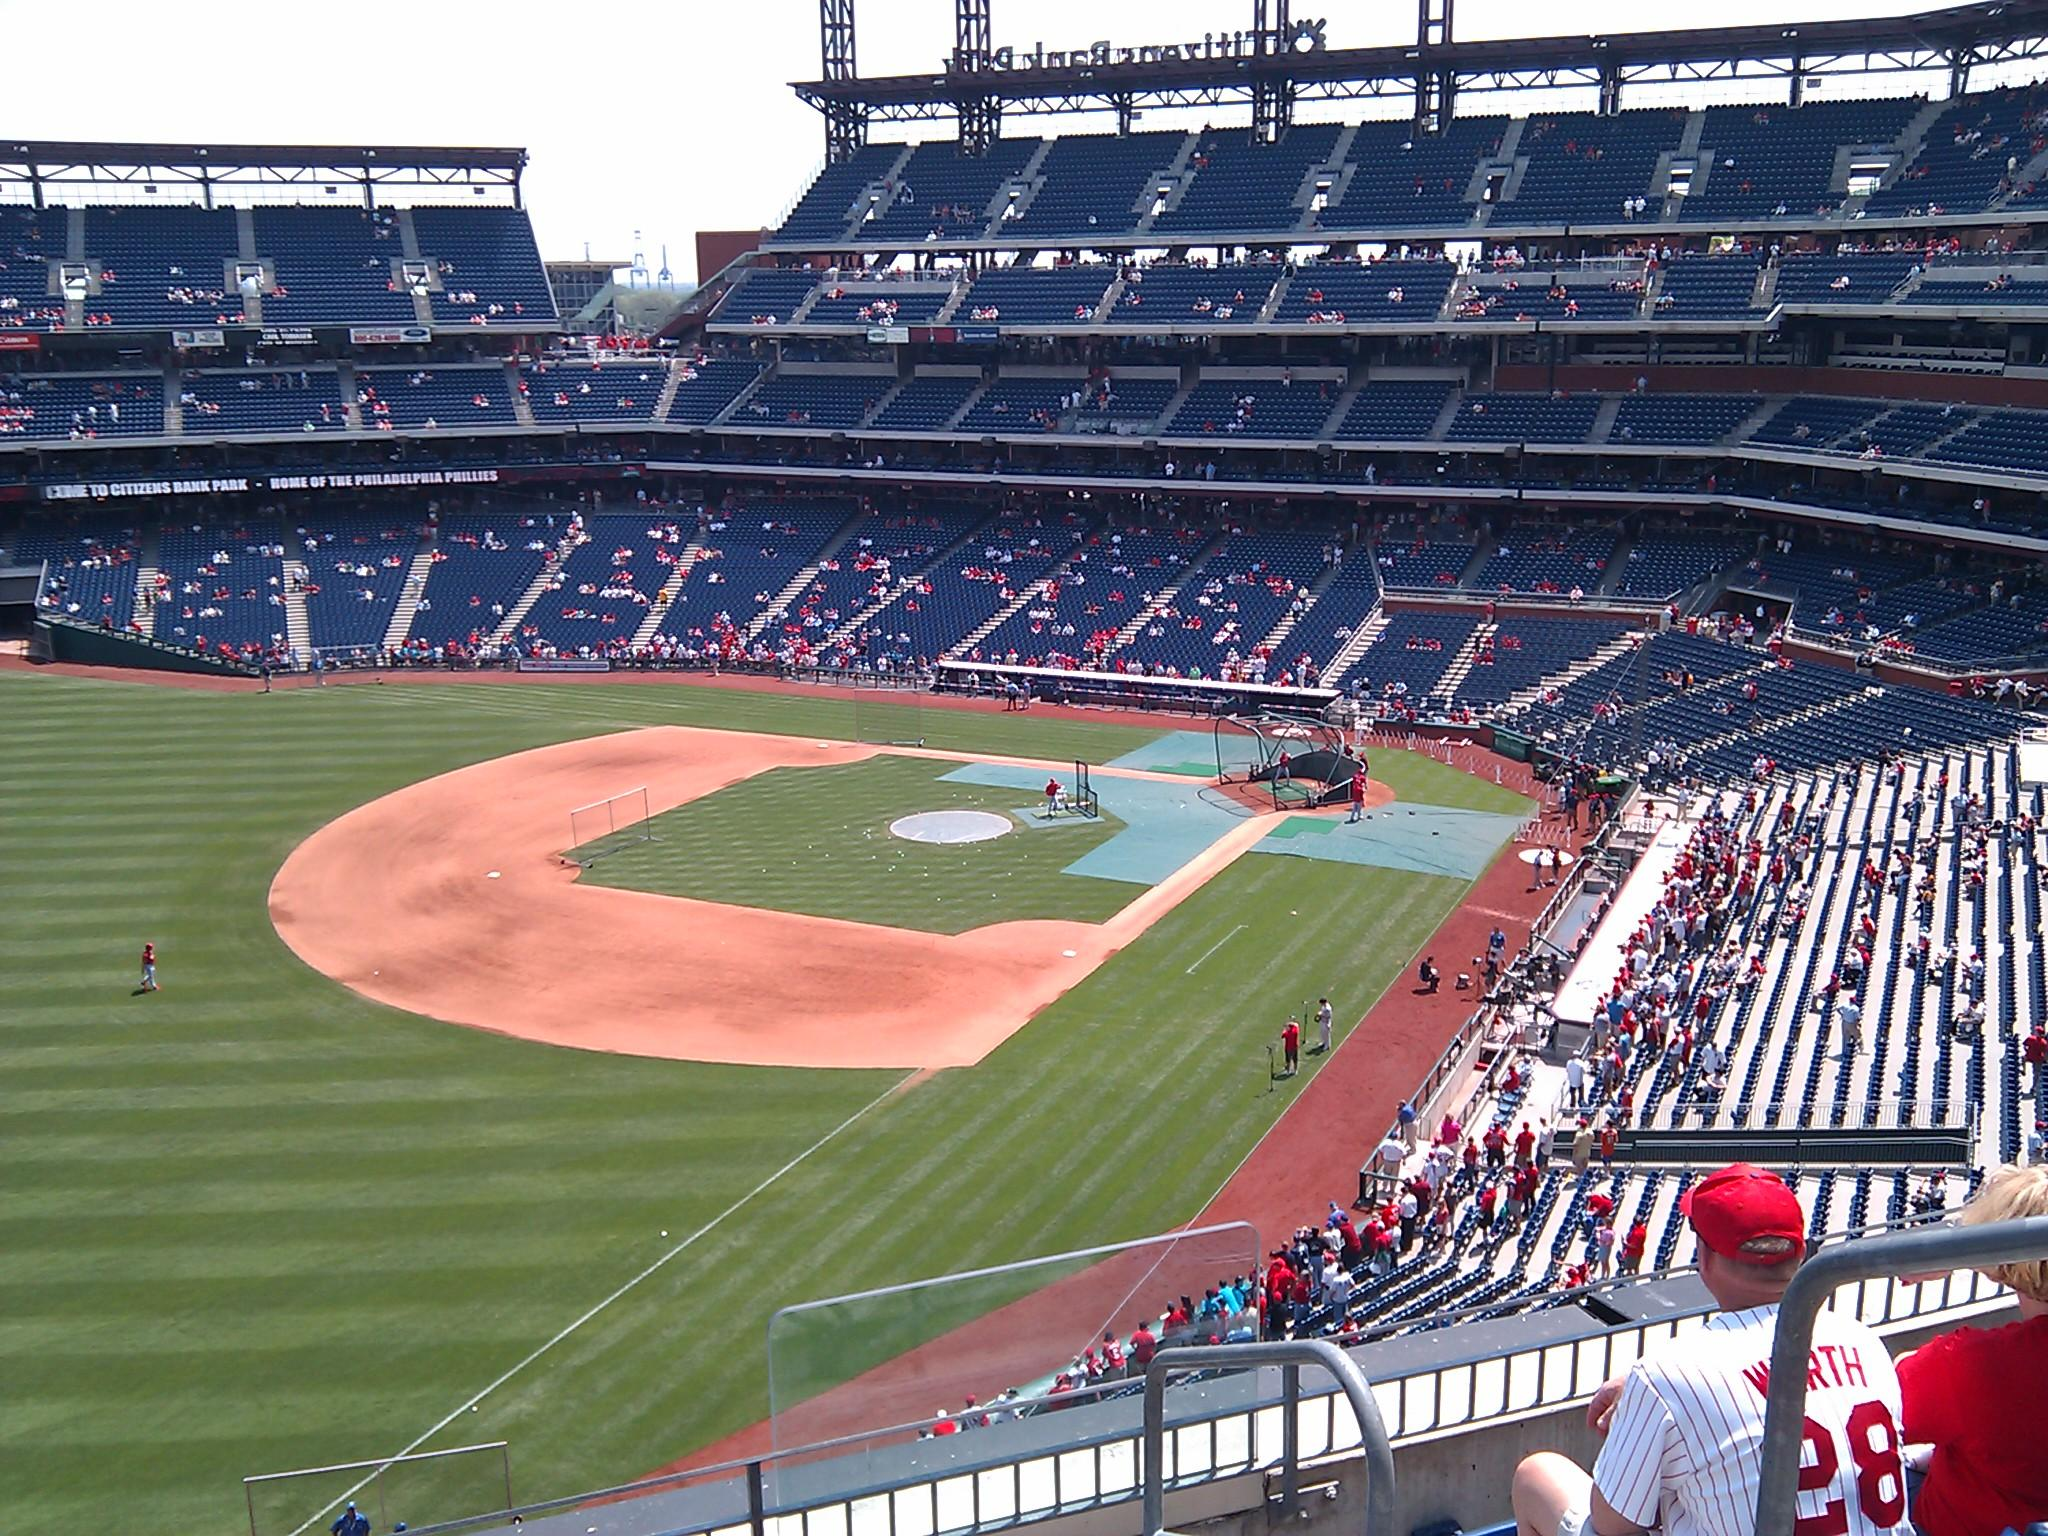 Citizens Bank Park Section 332 Row 5 Seat 1